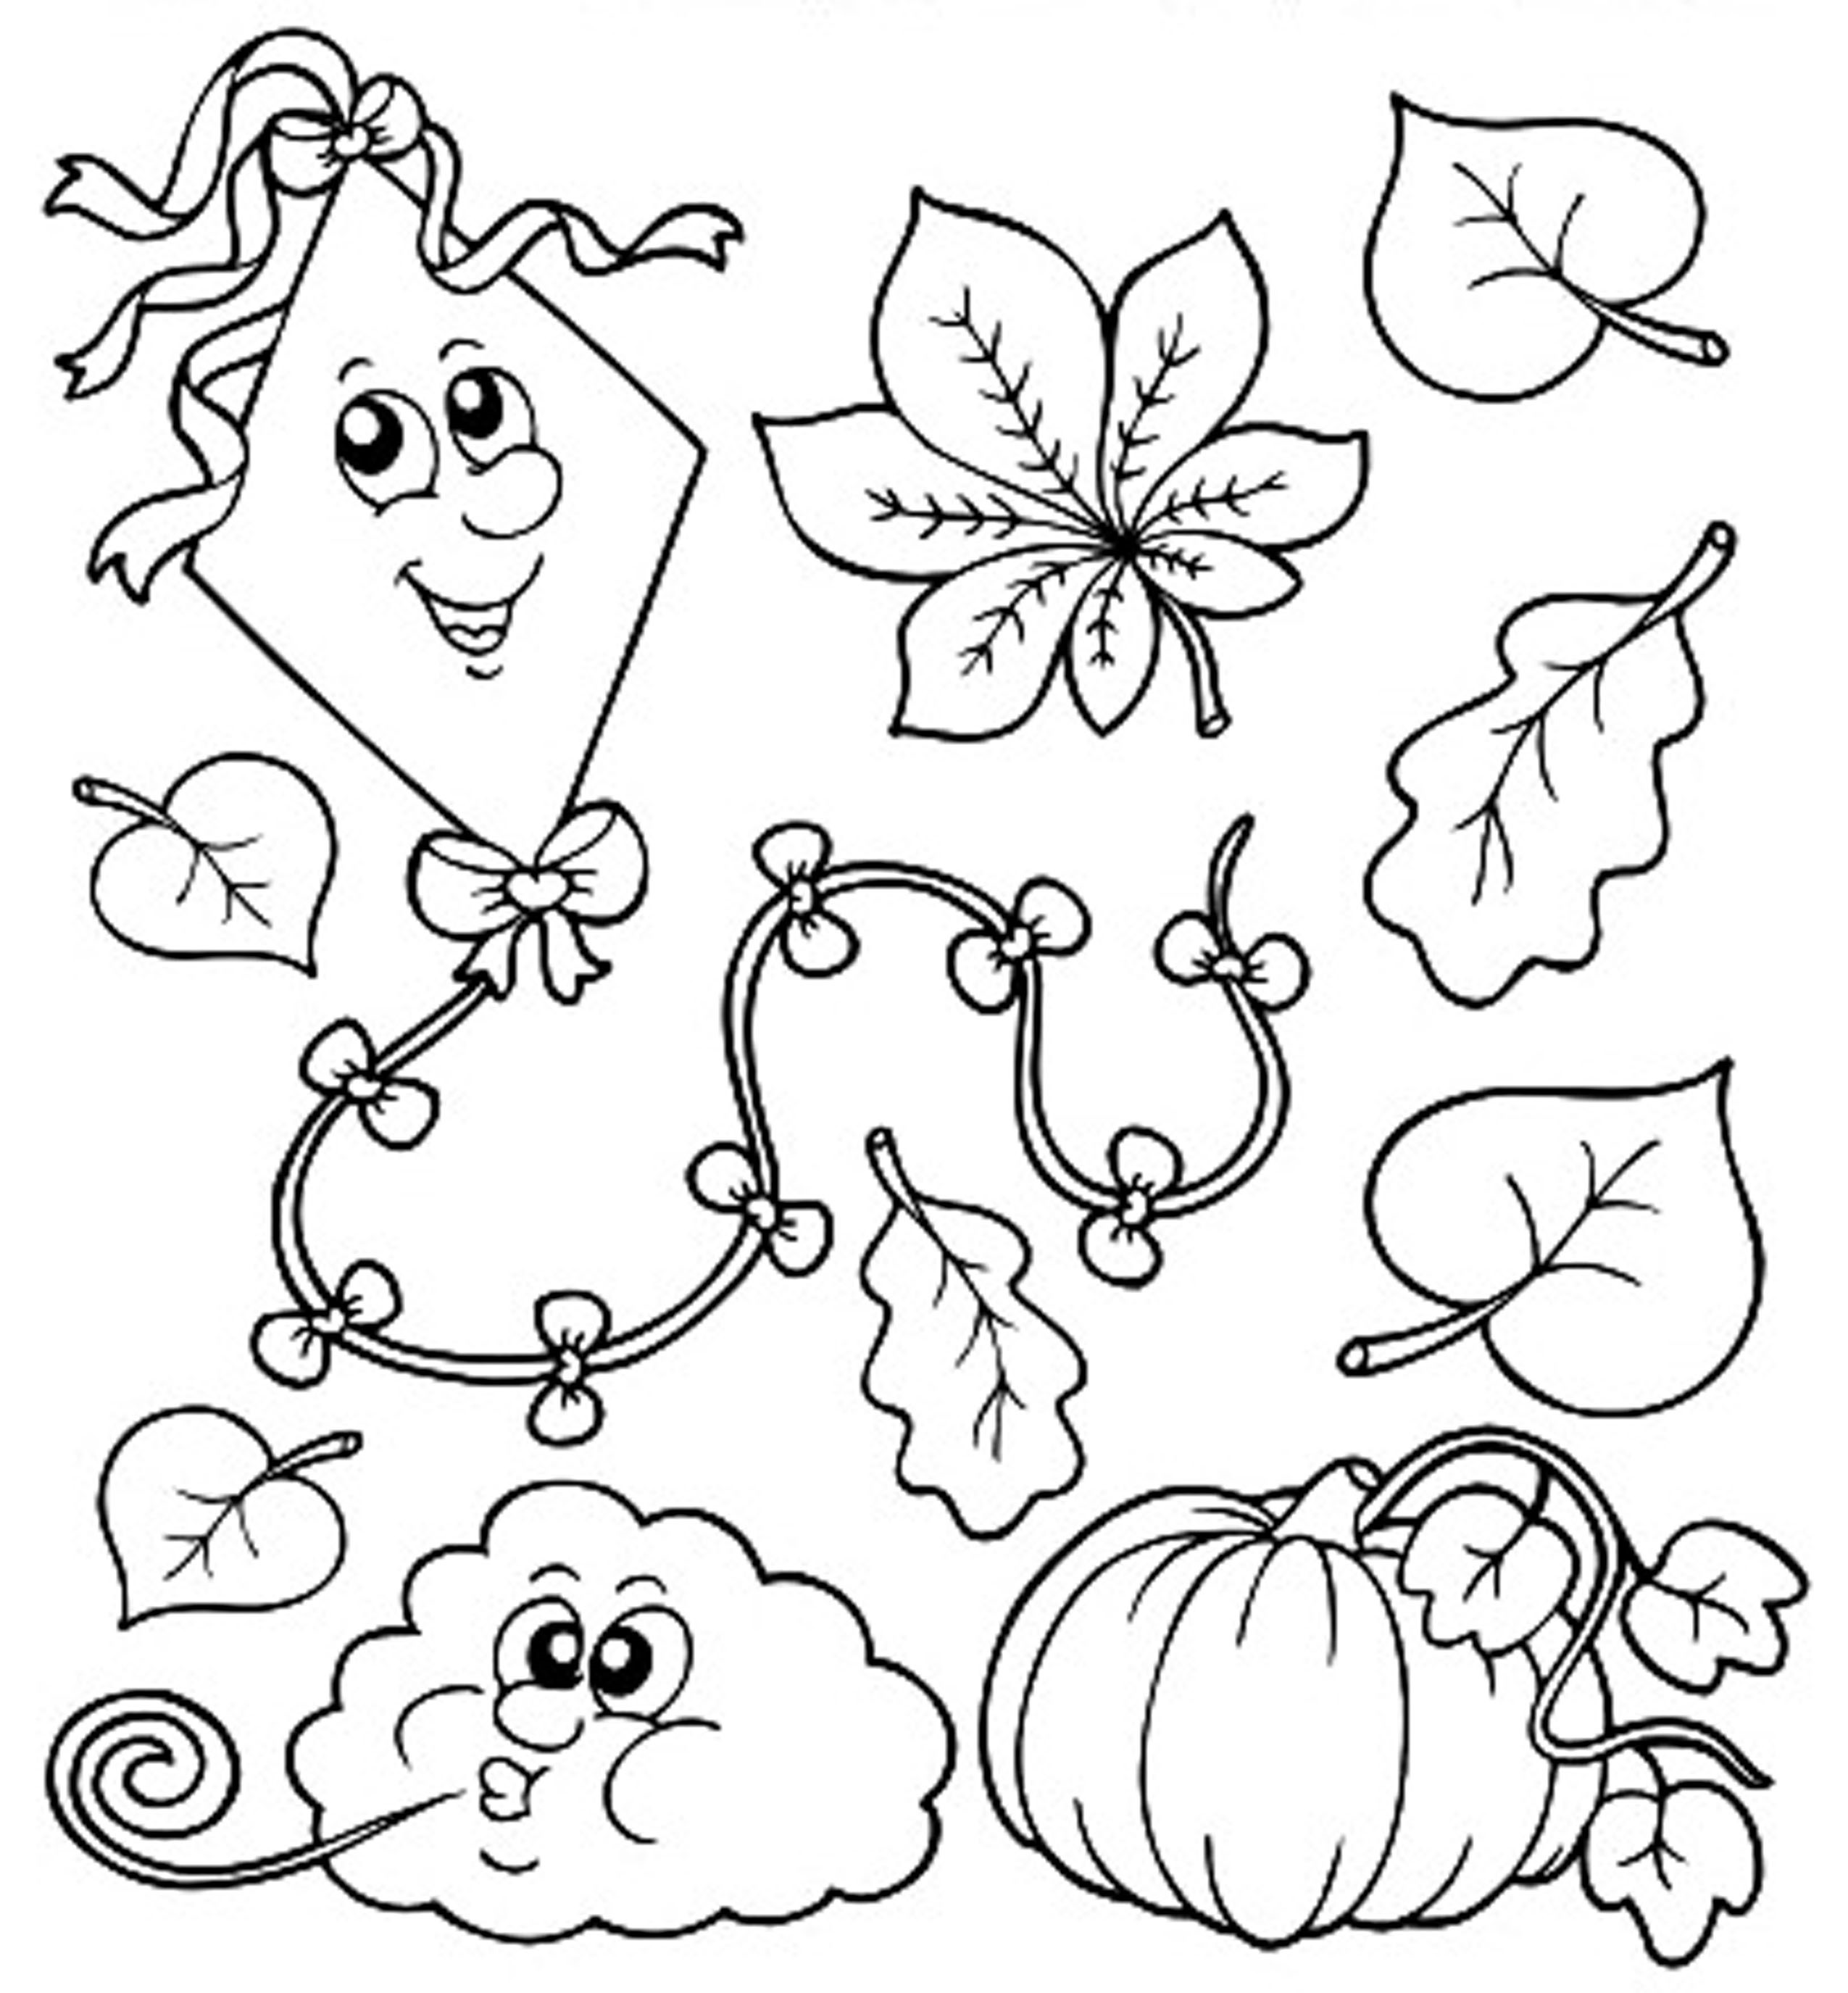 Fall Coloring Pages For Toddlers At Getdrawings